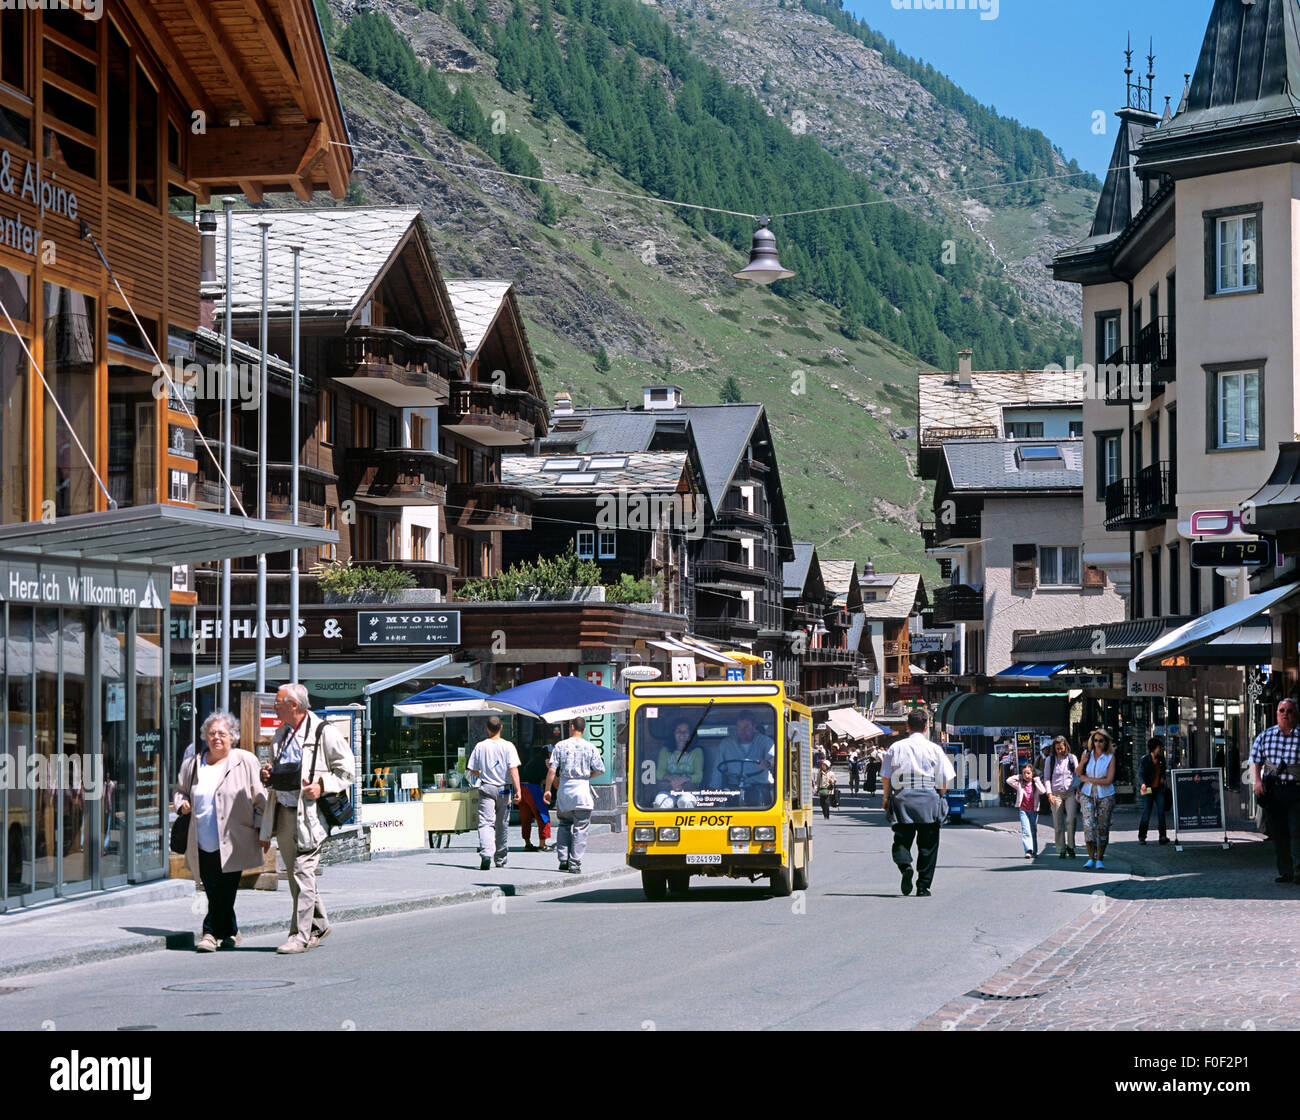 A battery-powered electric postal delivery van in Bahnhofstrasse in the 'car-free' town centre of Zermatt, - Stock Image